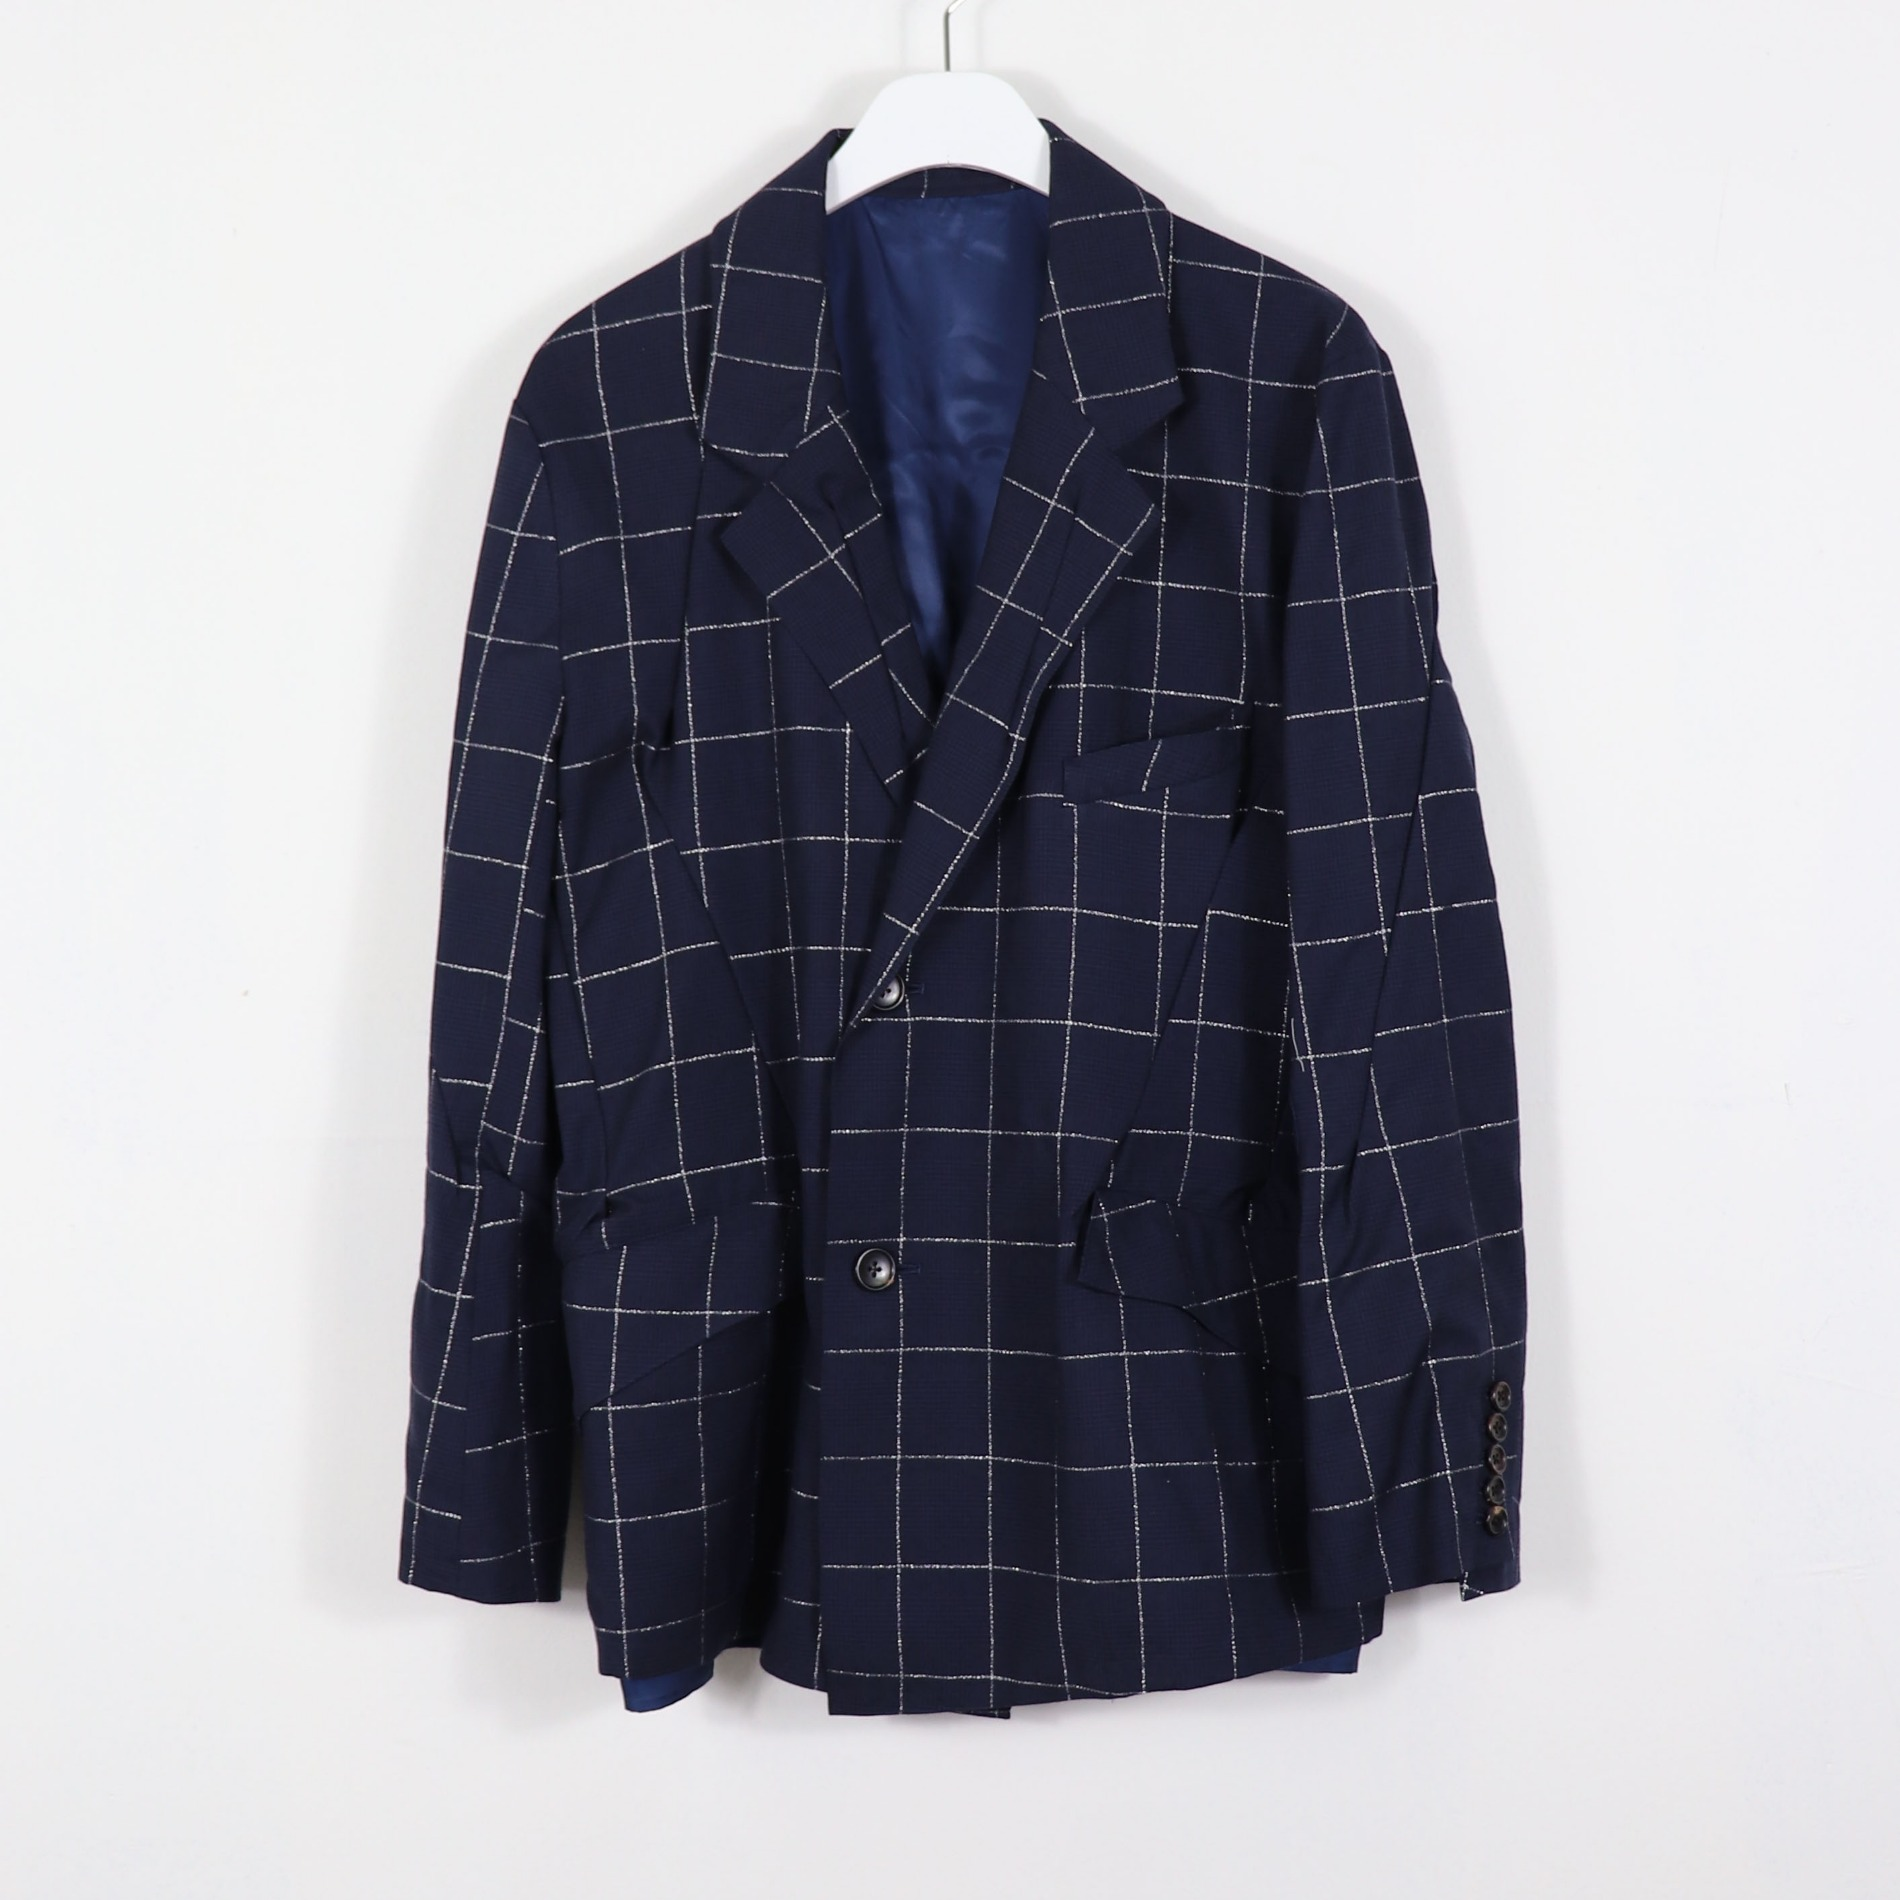 AW20 SULVAM DARTS SINGLE JACKET NAVY